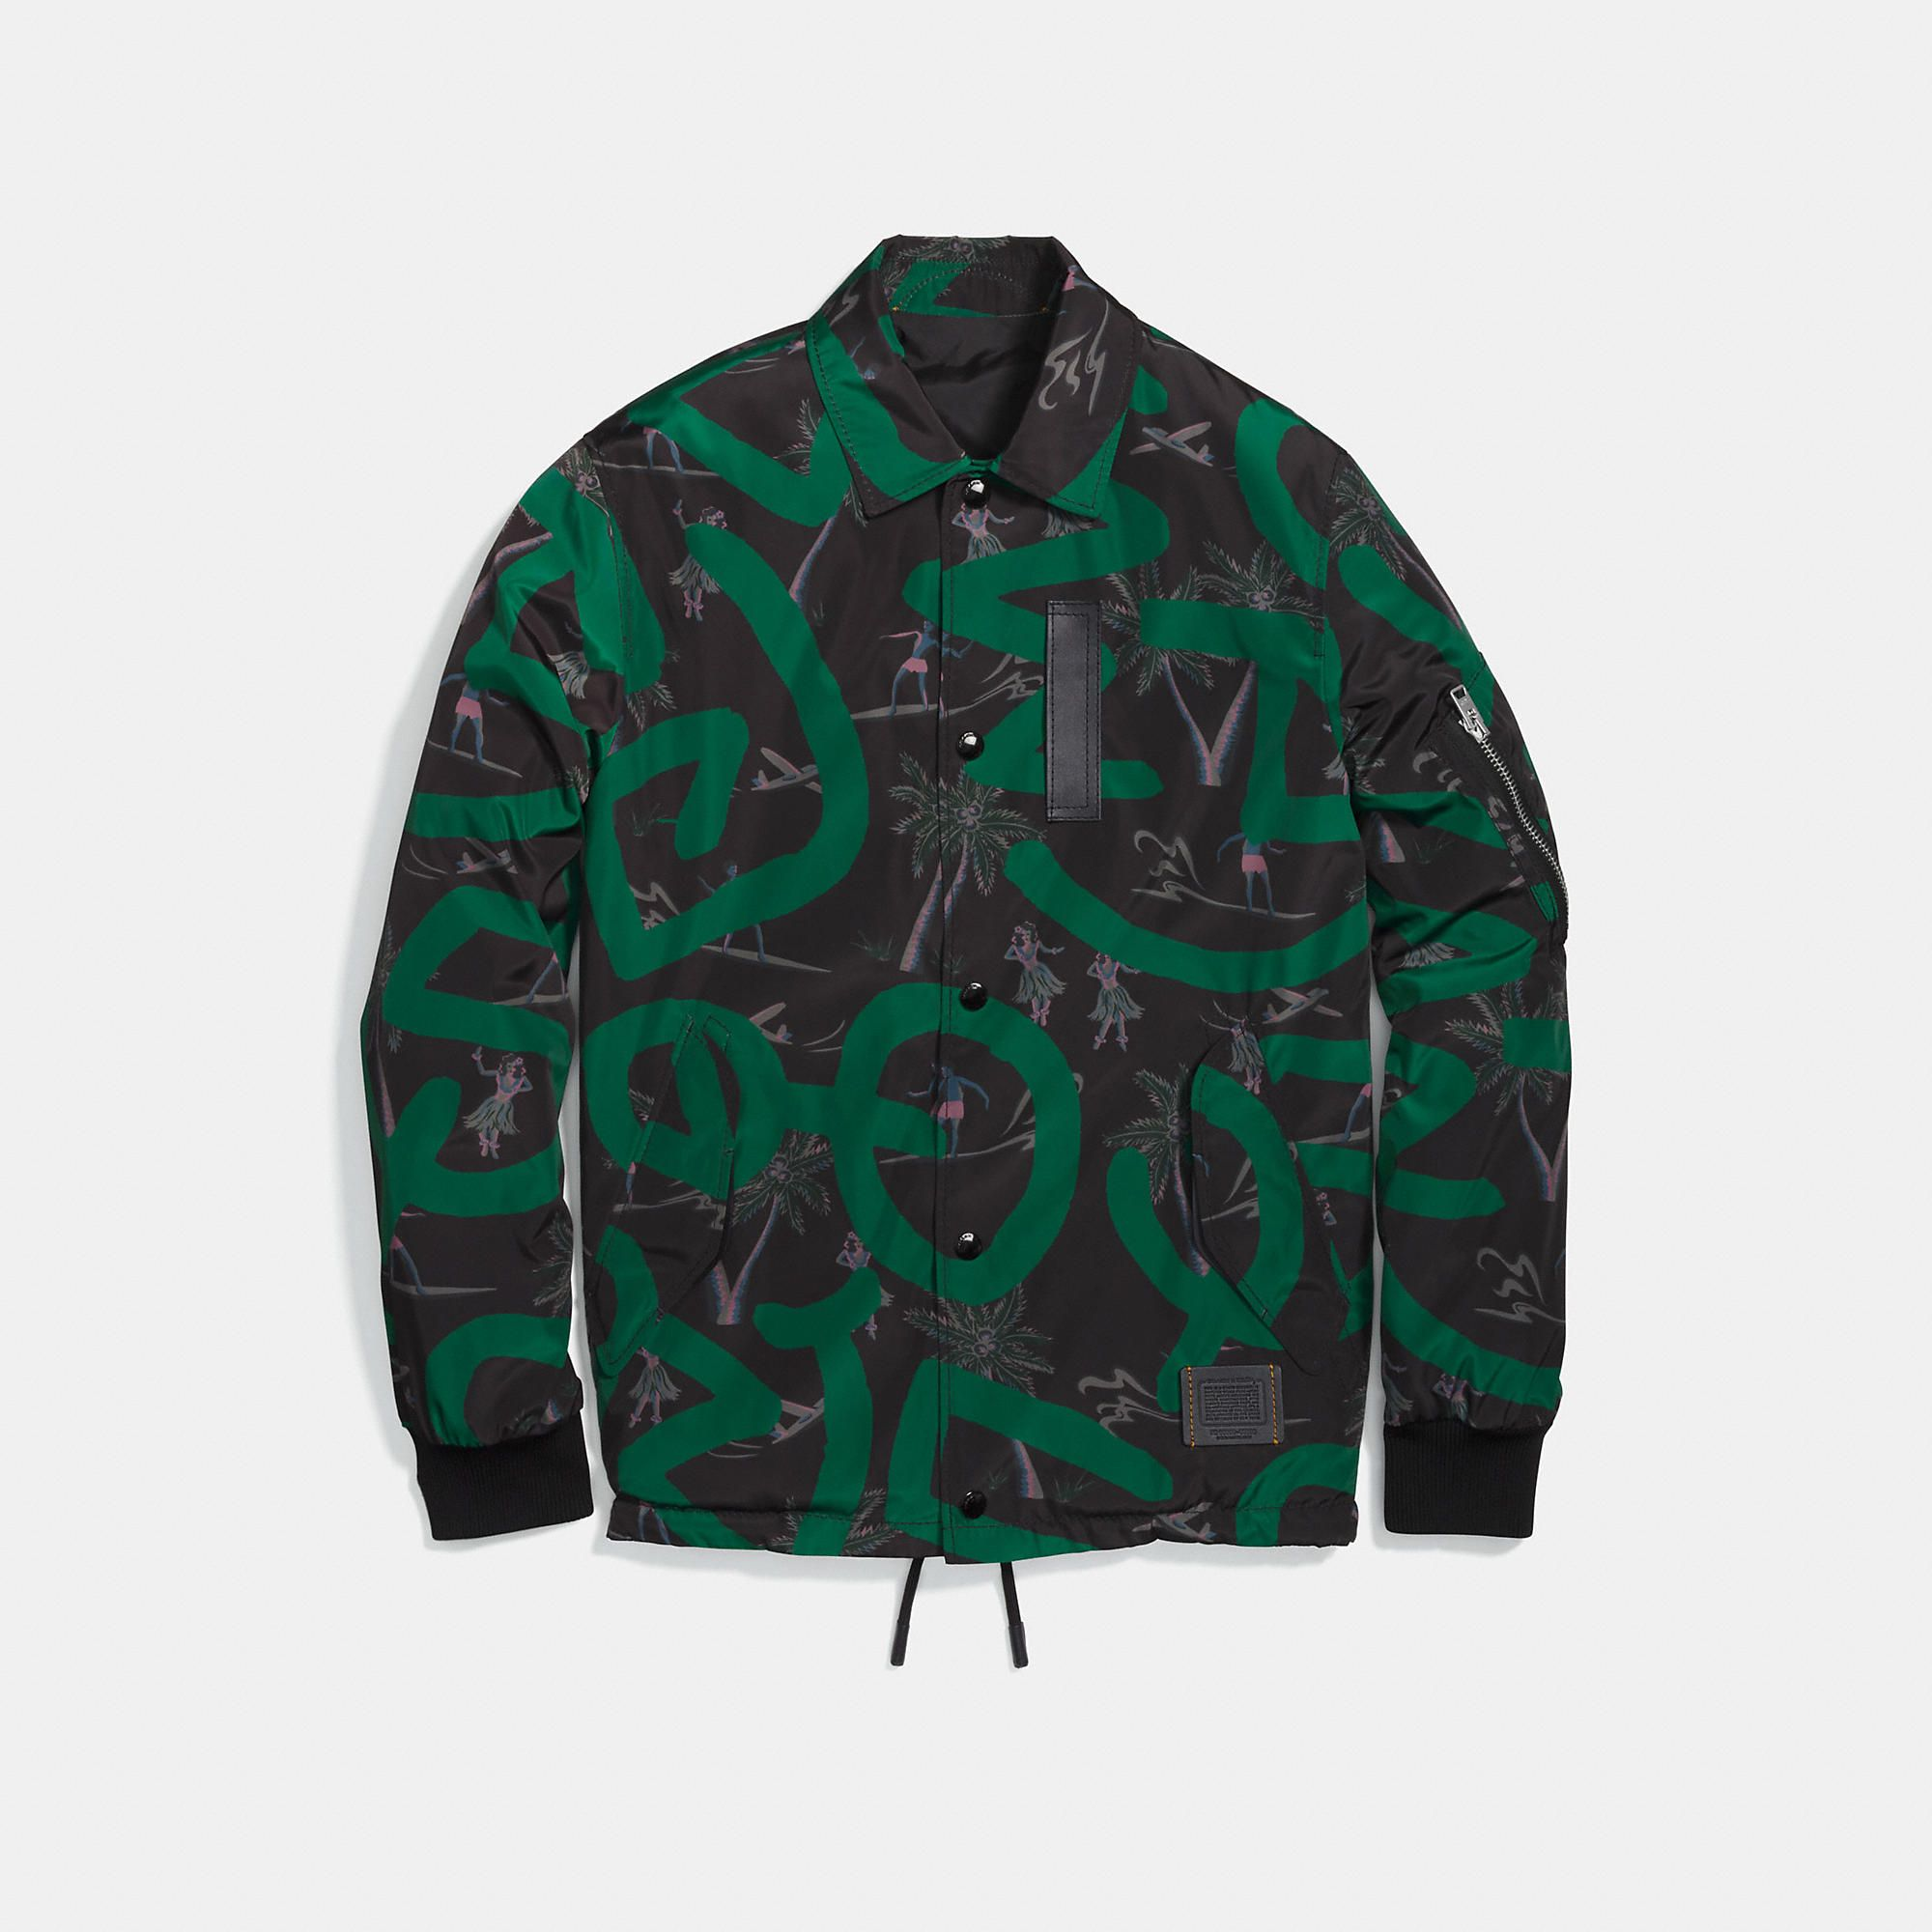 3ef5f94a2aed COACH Men s X Keith Haring Jacket